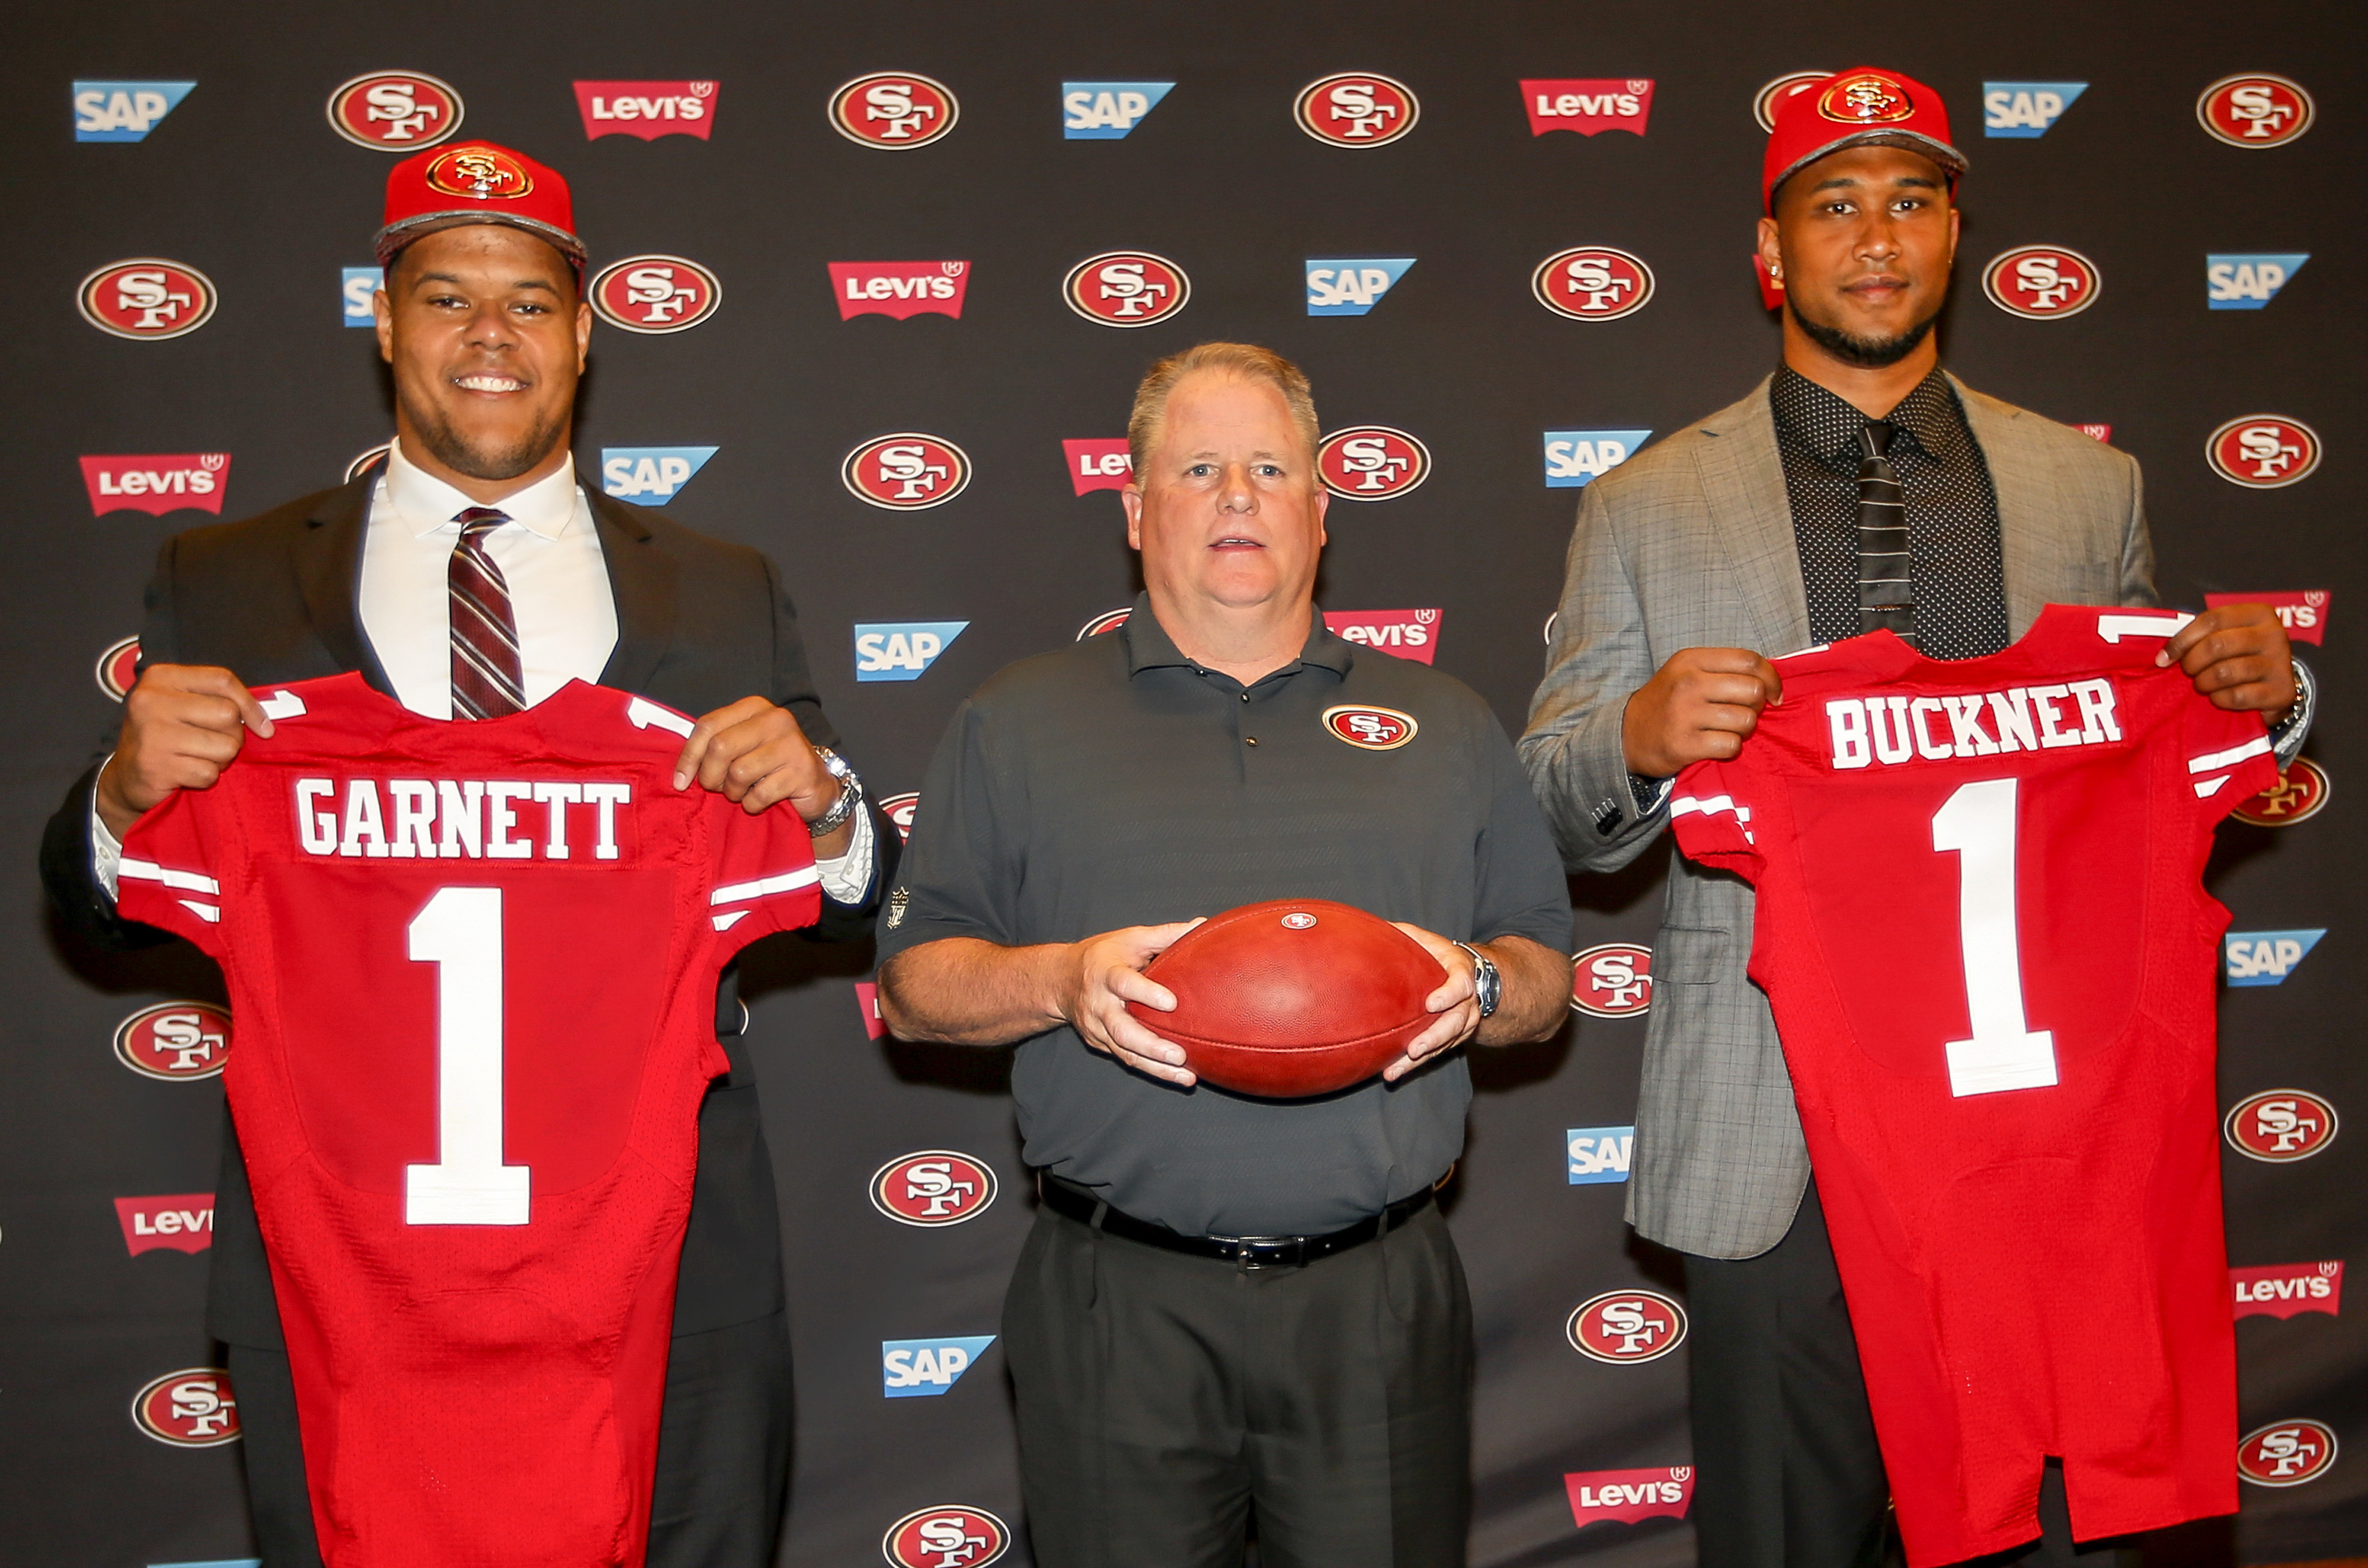 San Francisco 49ers first-round draft picks Joshua Garnett, left, from Stanford, and DeForest Buckner, right, from Oregon, pose with head coach Chip Kelly, center, during an NFL footnallnews conference in Santa Clara, Calif., Friday, April 29, 2016. (AP P